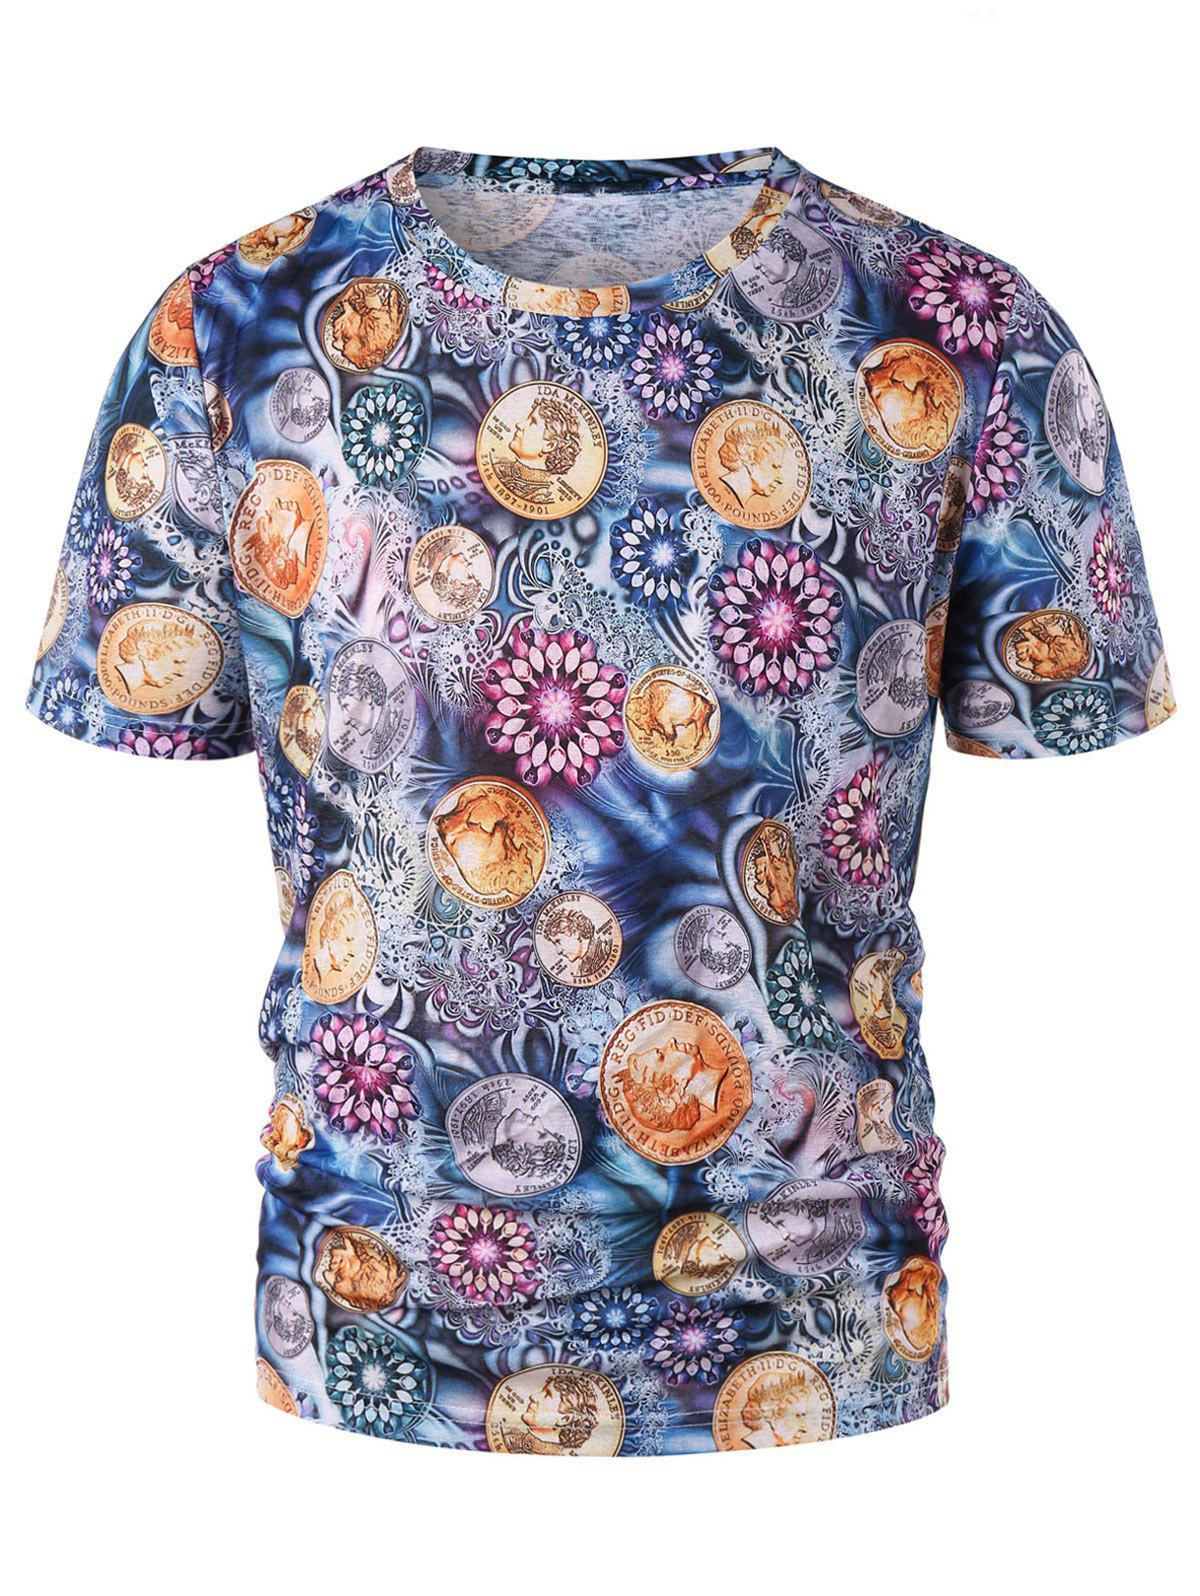 Floral Coins Print Graphic Tee - multicolor L